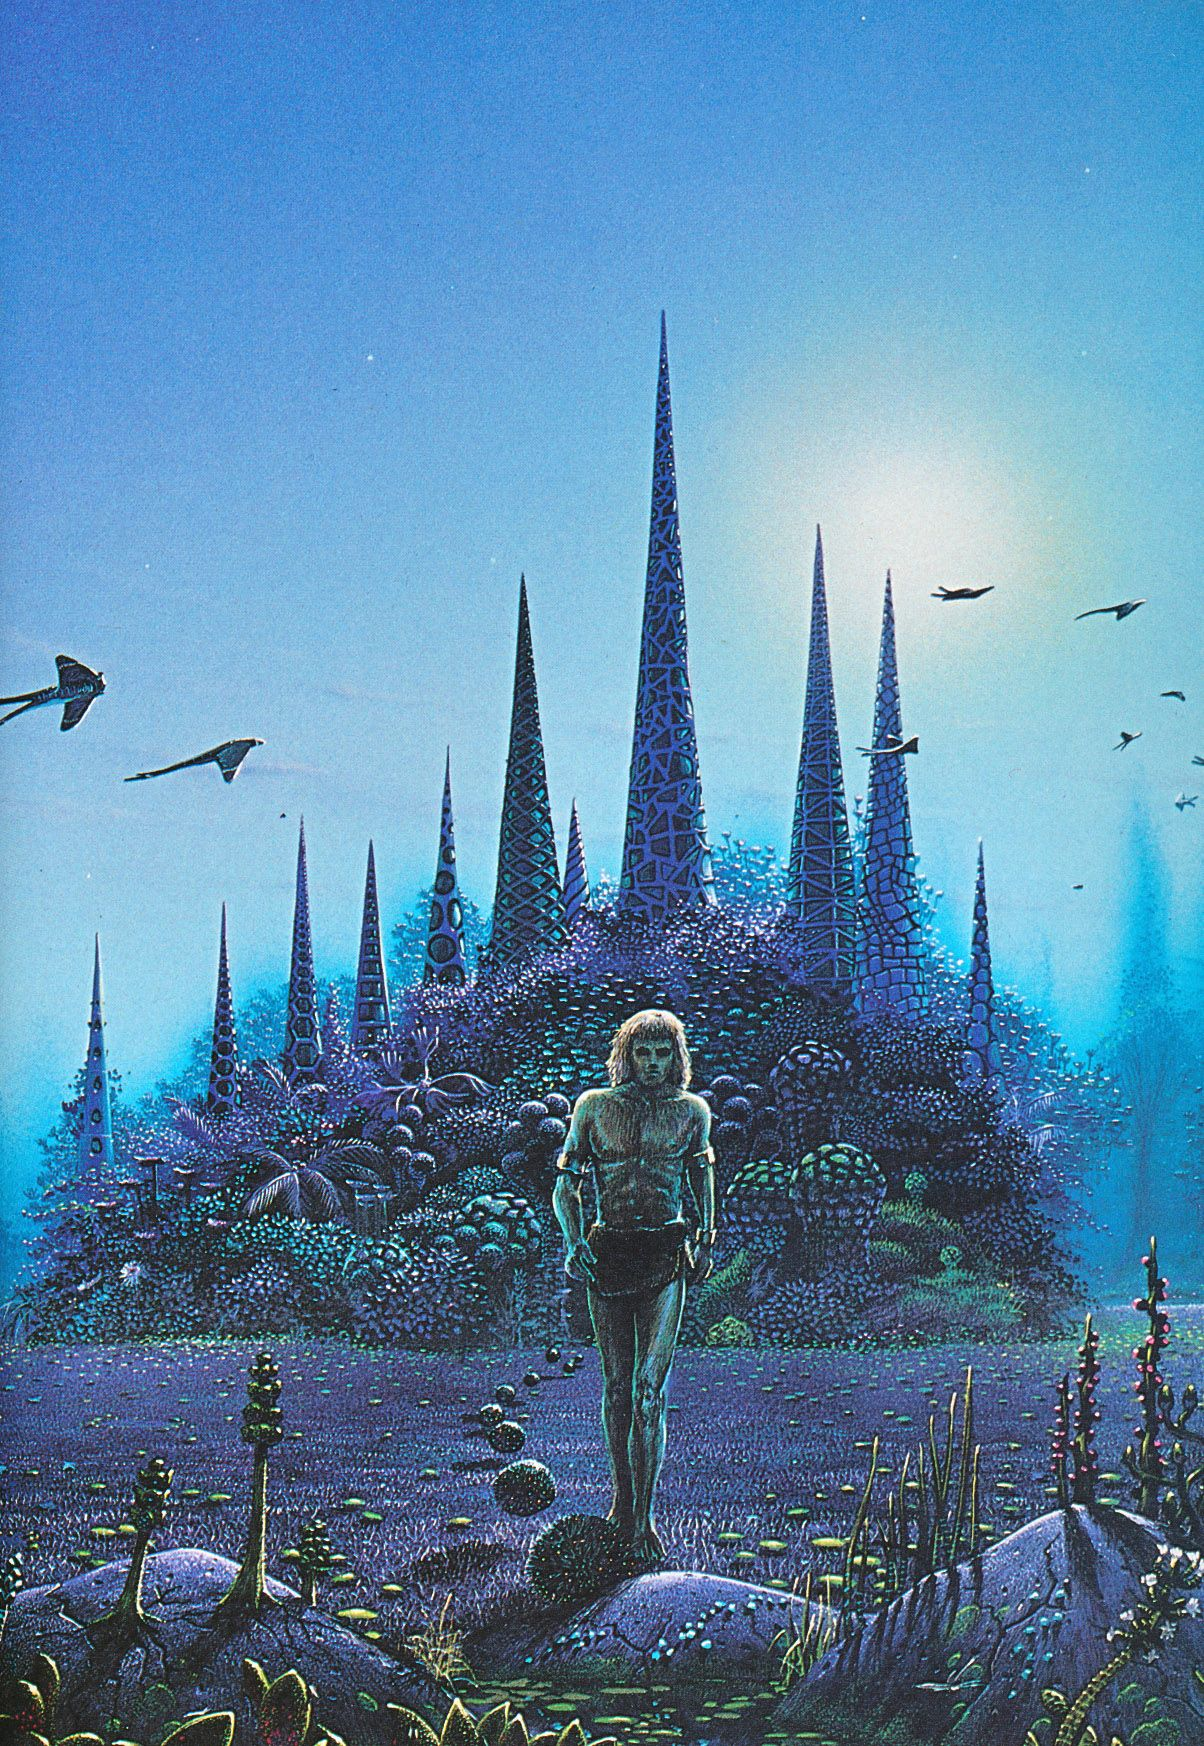 Book Cover Illustration Fee : Cover painting by tim white for the book 'stranger in a